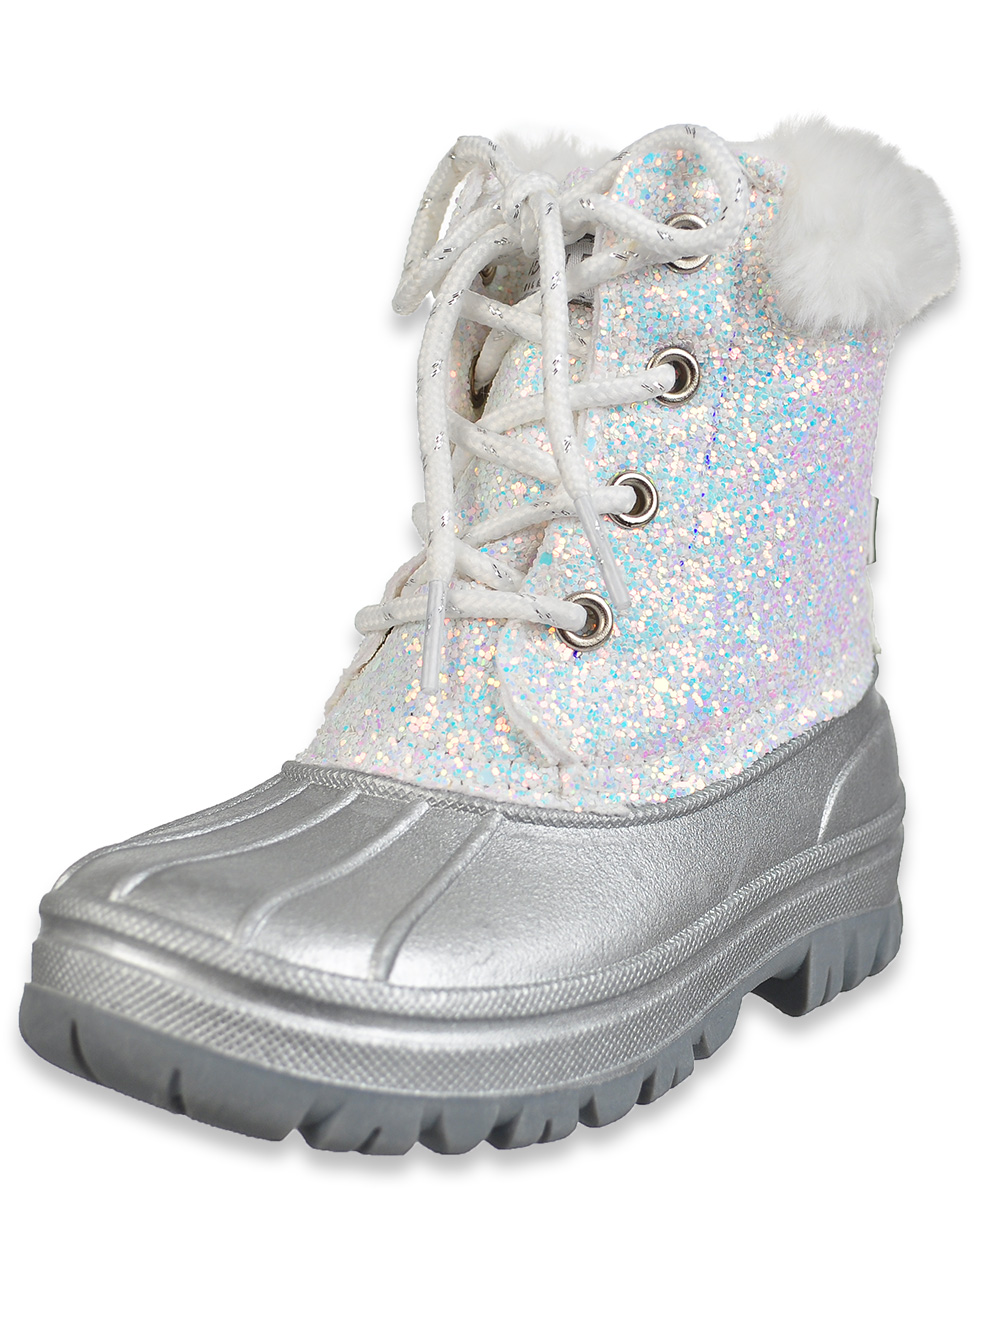 Girls' Glitter Duck Boots